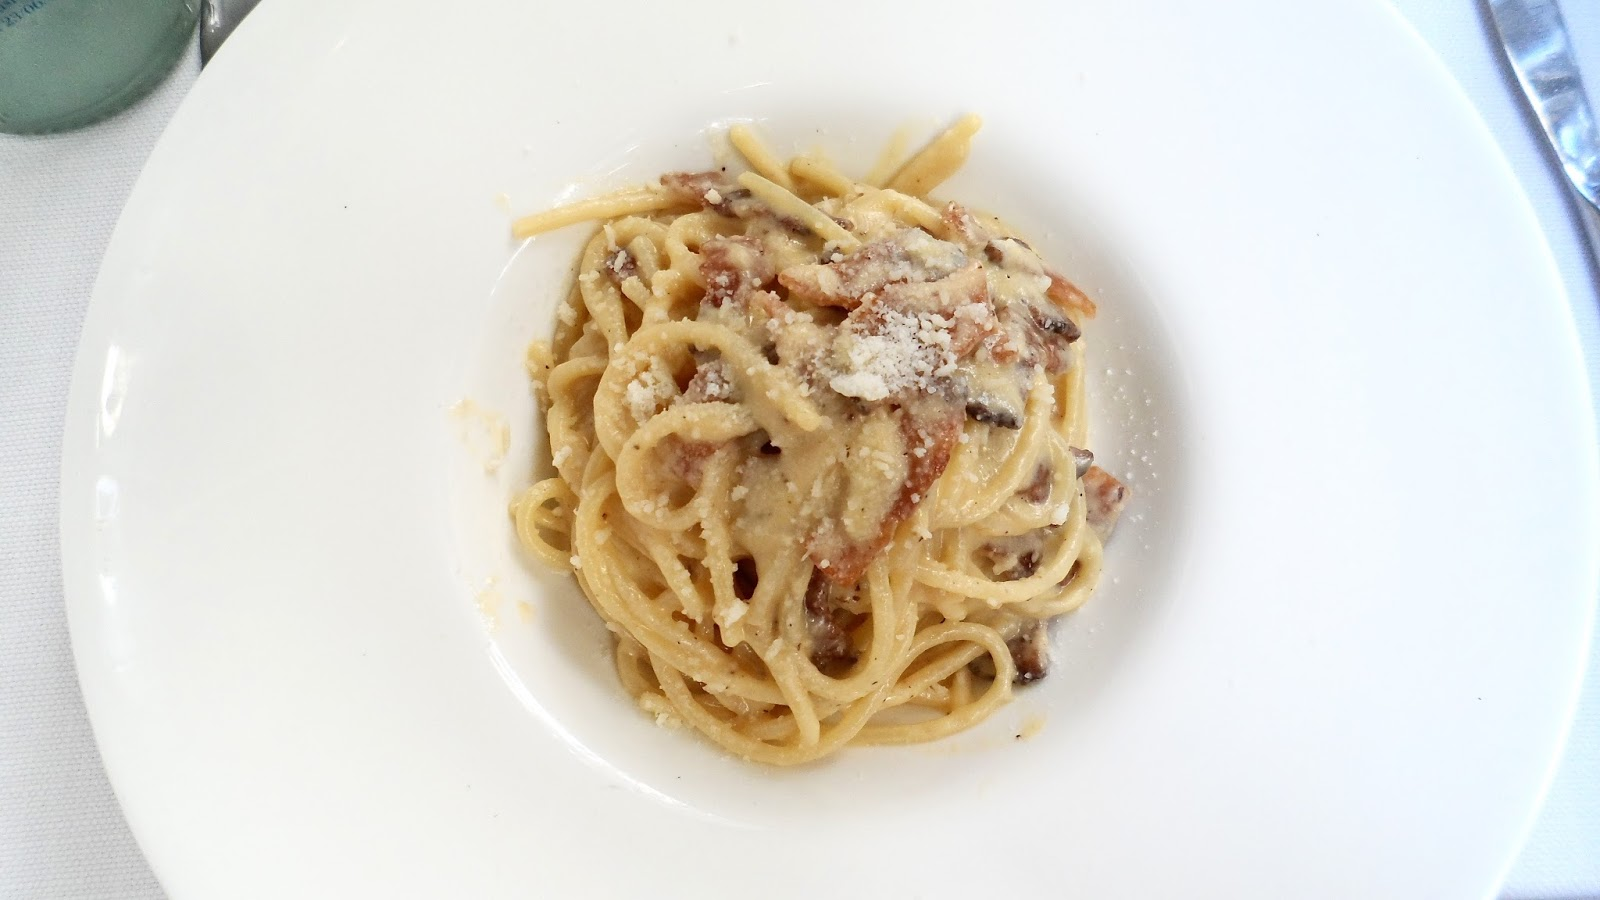 Carbonara pasta from Ristorante Life in Rome